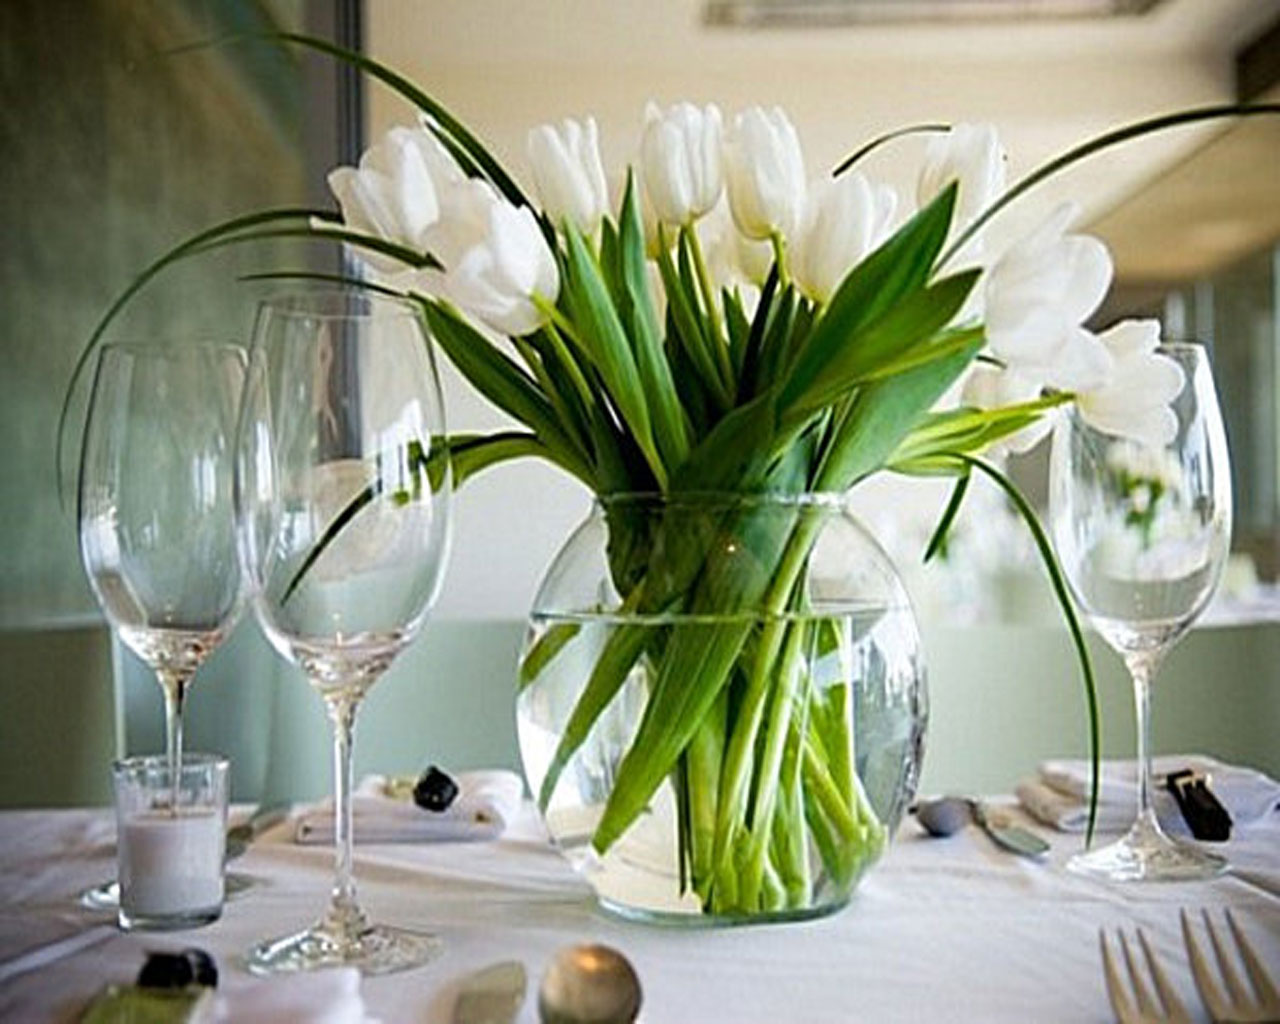 Top 21 ideas for the dining table centerpiece qnud for Dining table centerpieces